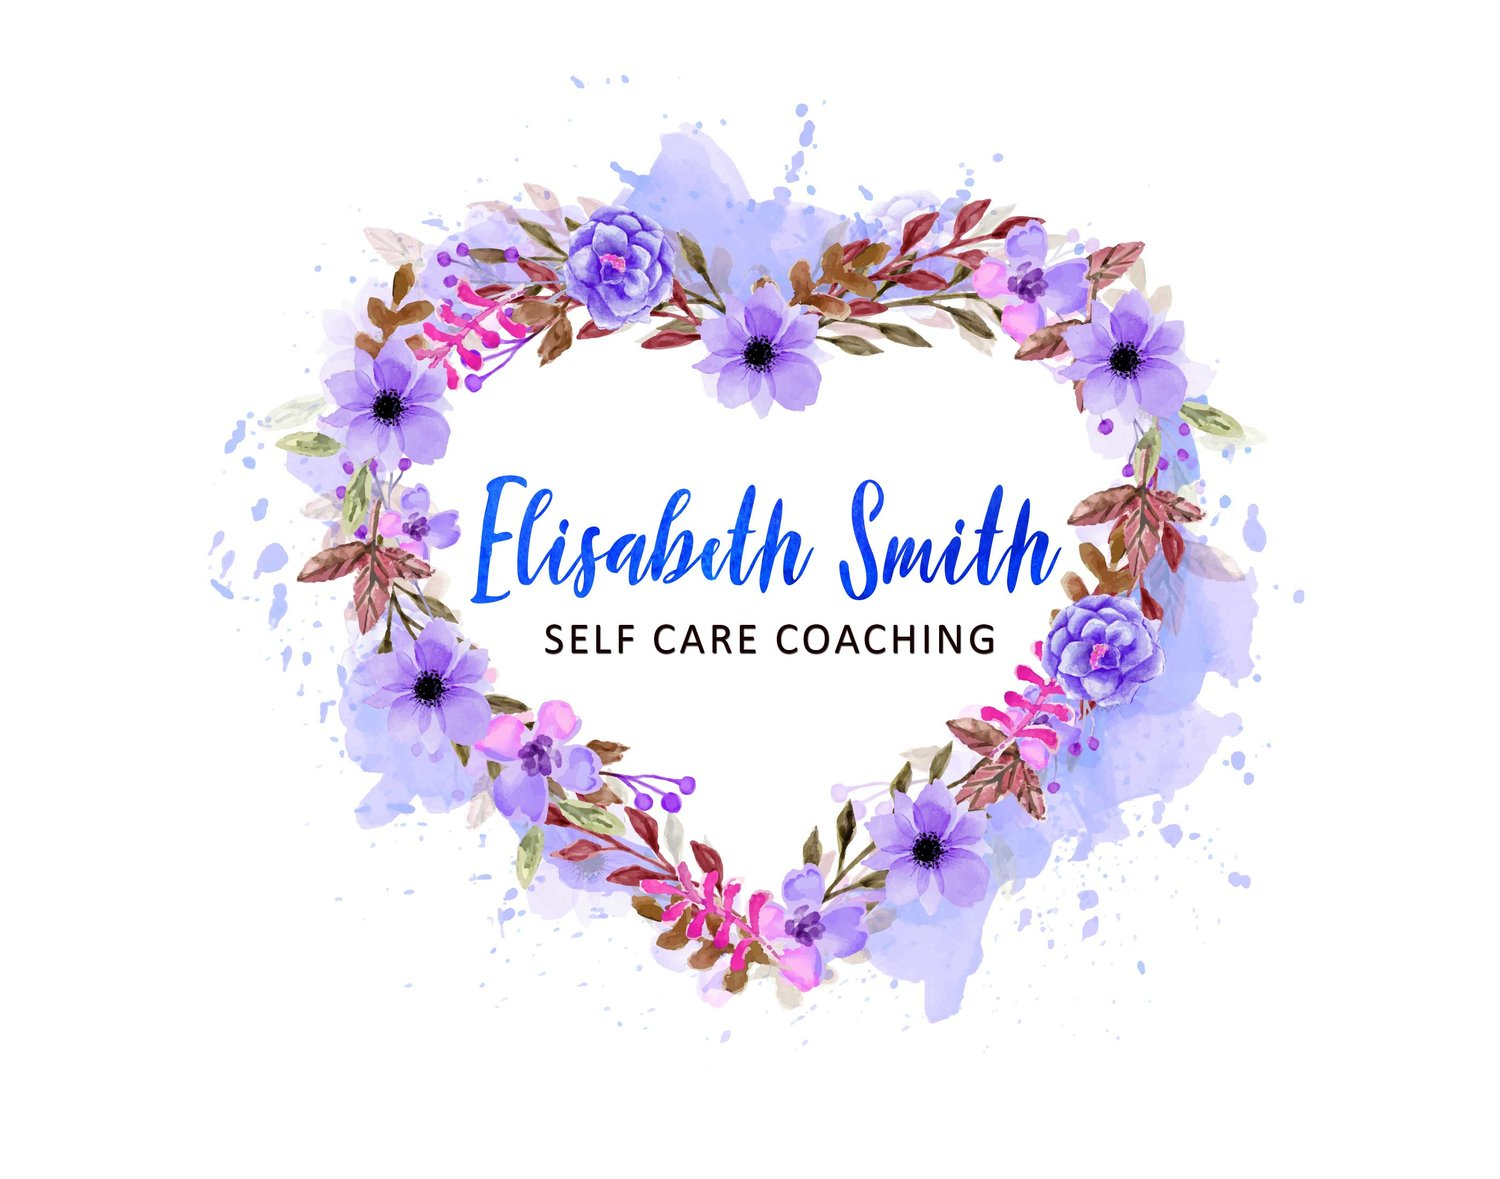 Elisabeth Smith Coaching